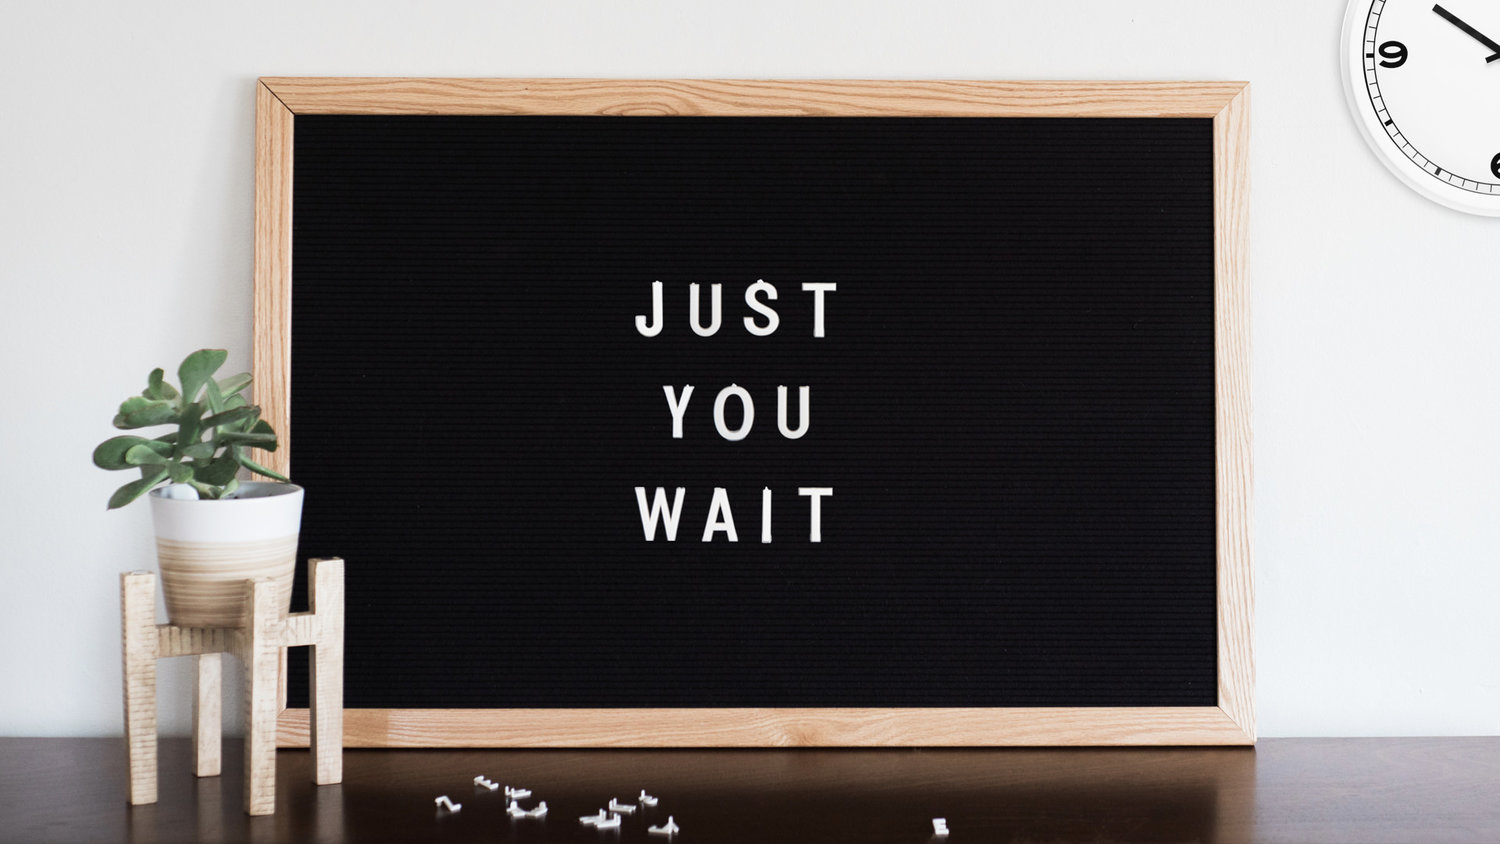 Just+You+Wait+series+artwork.001.jpeg